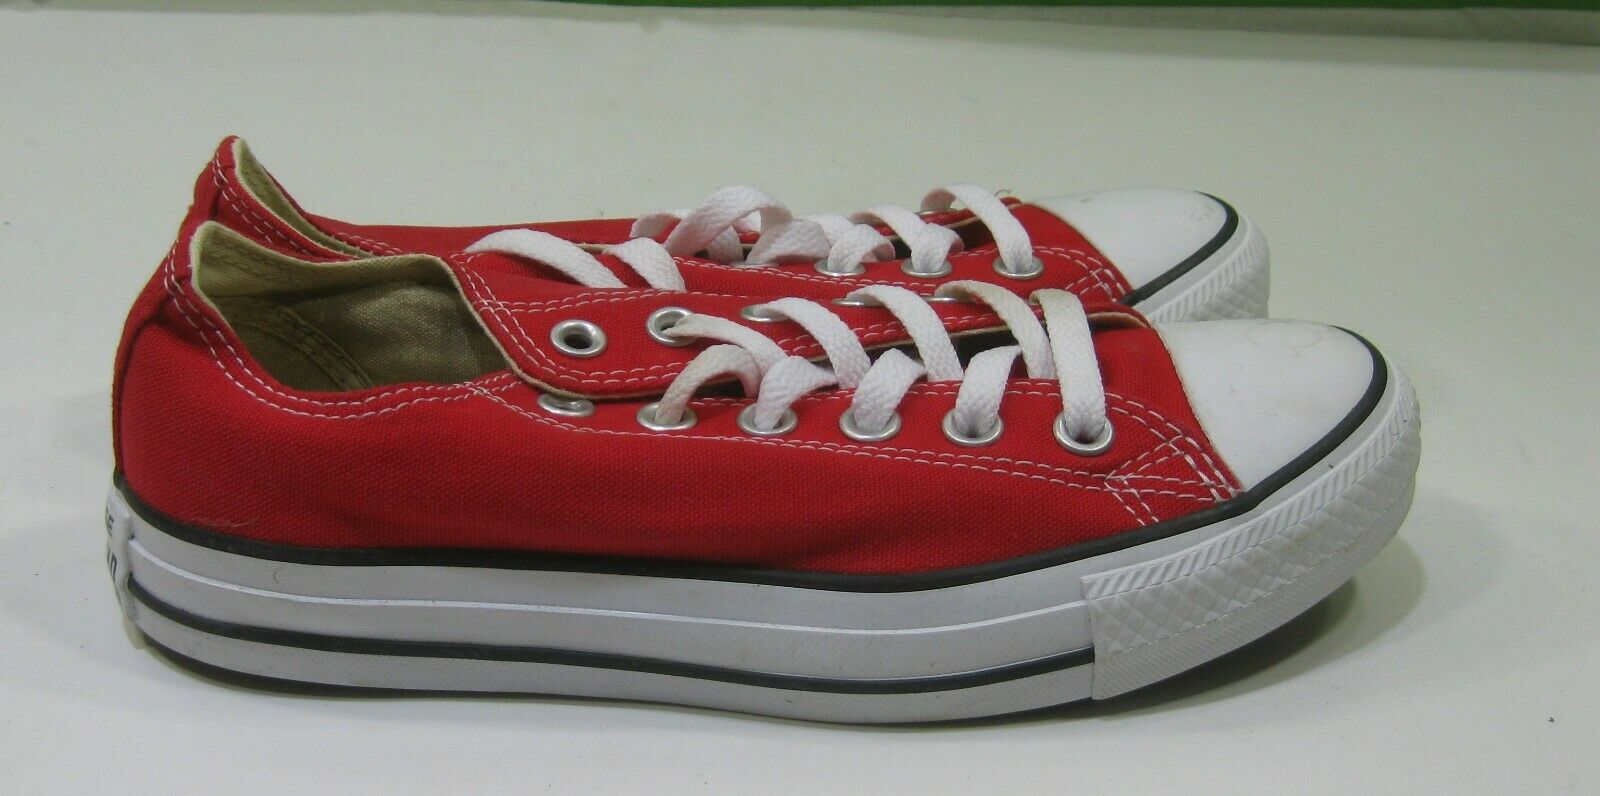 M9696  Converse shoes Chuck Taylor Ox All Star RED LOW  Sneakers Men 5 Wo  7